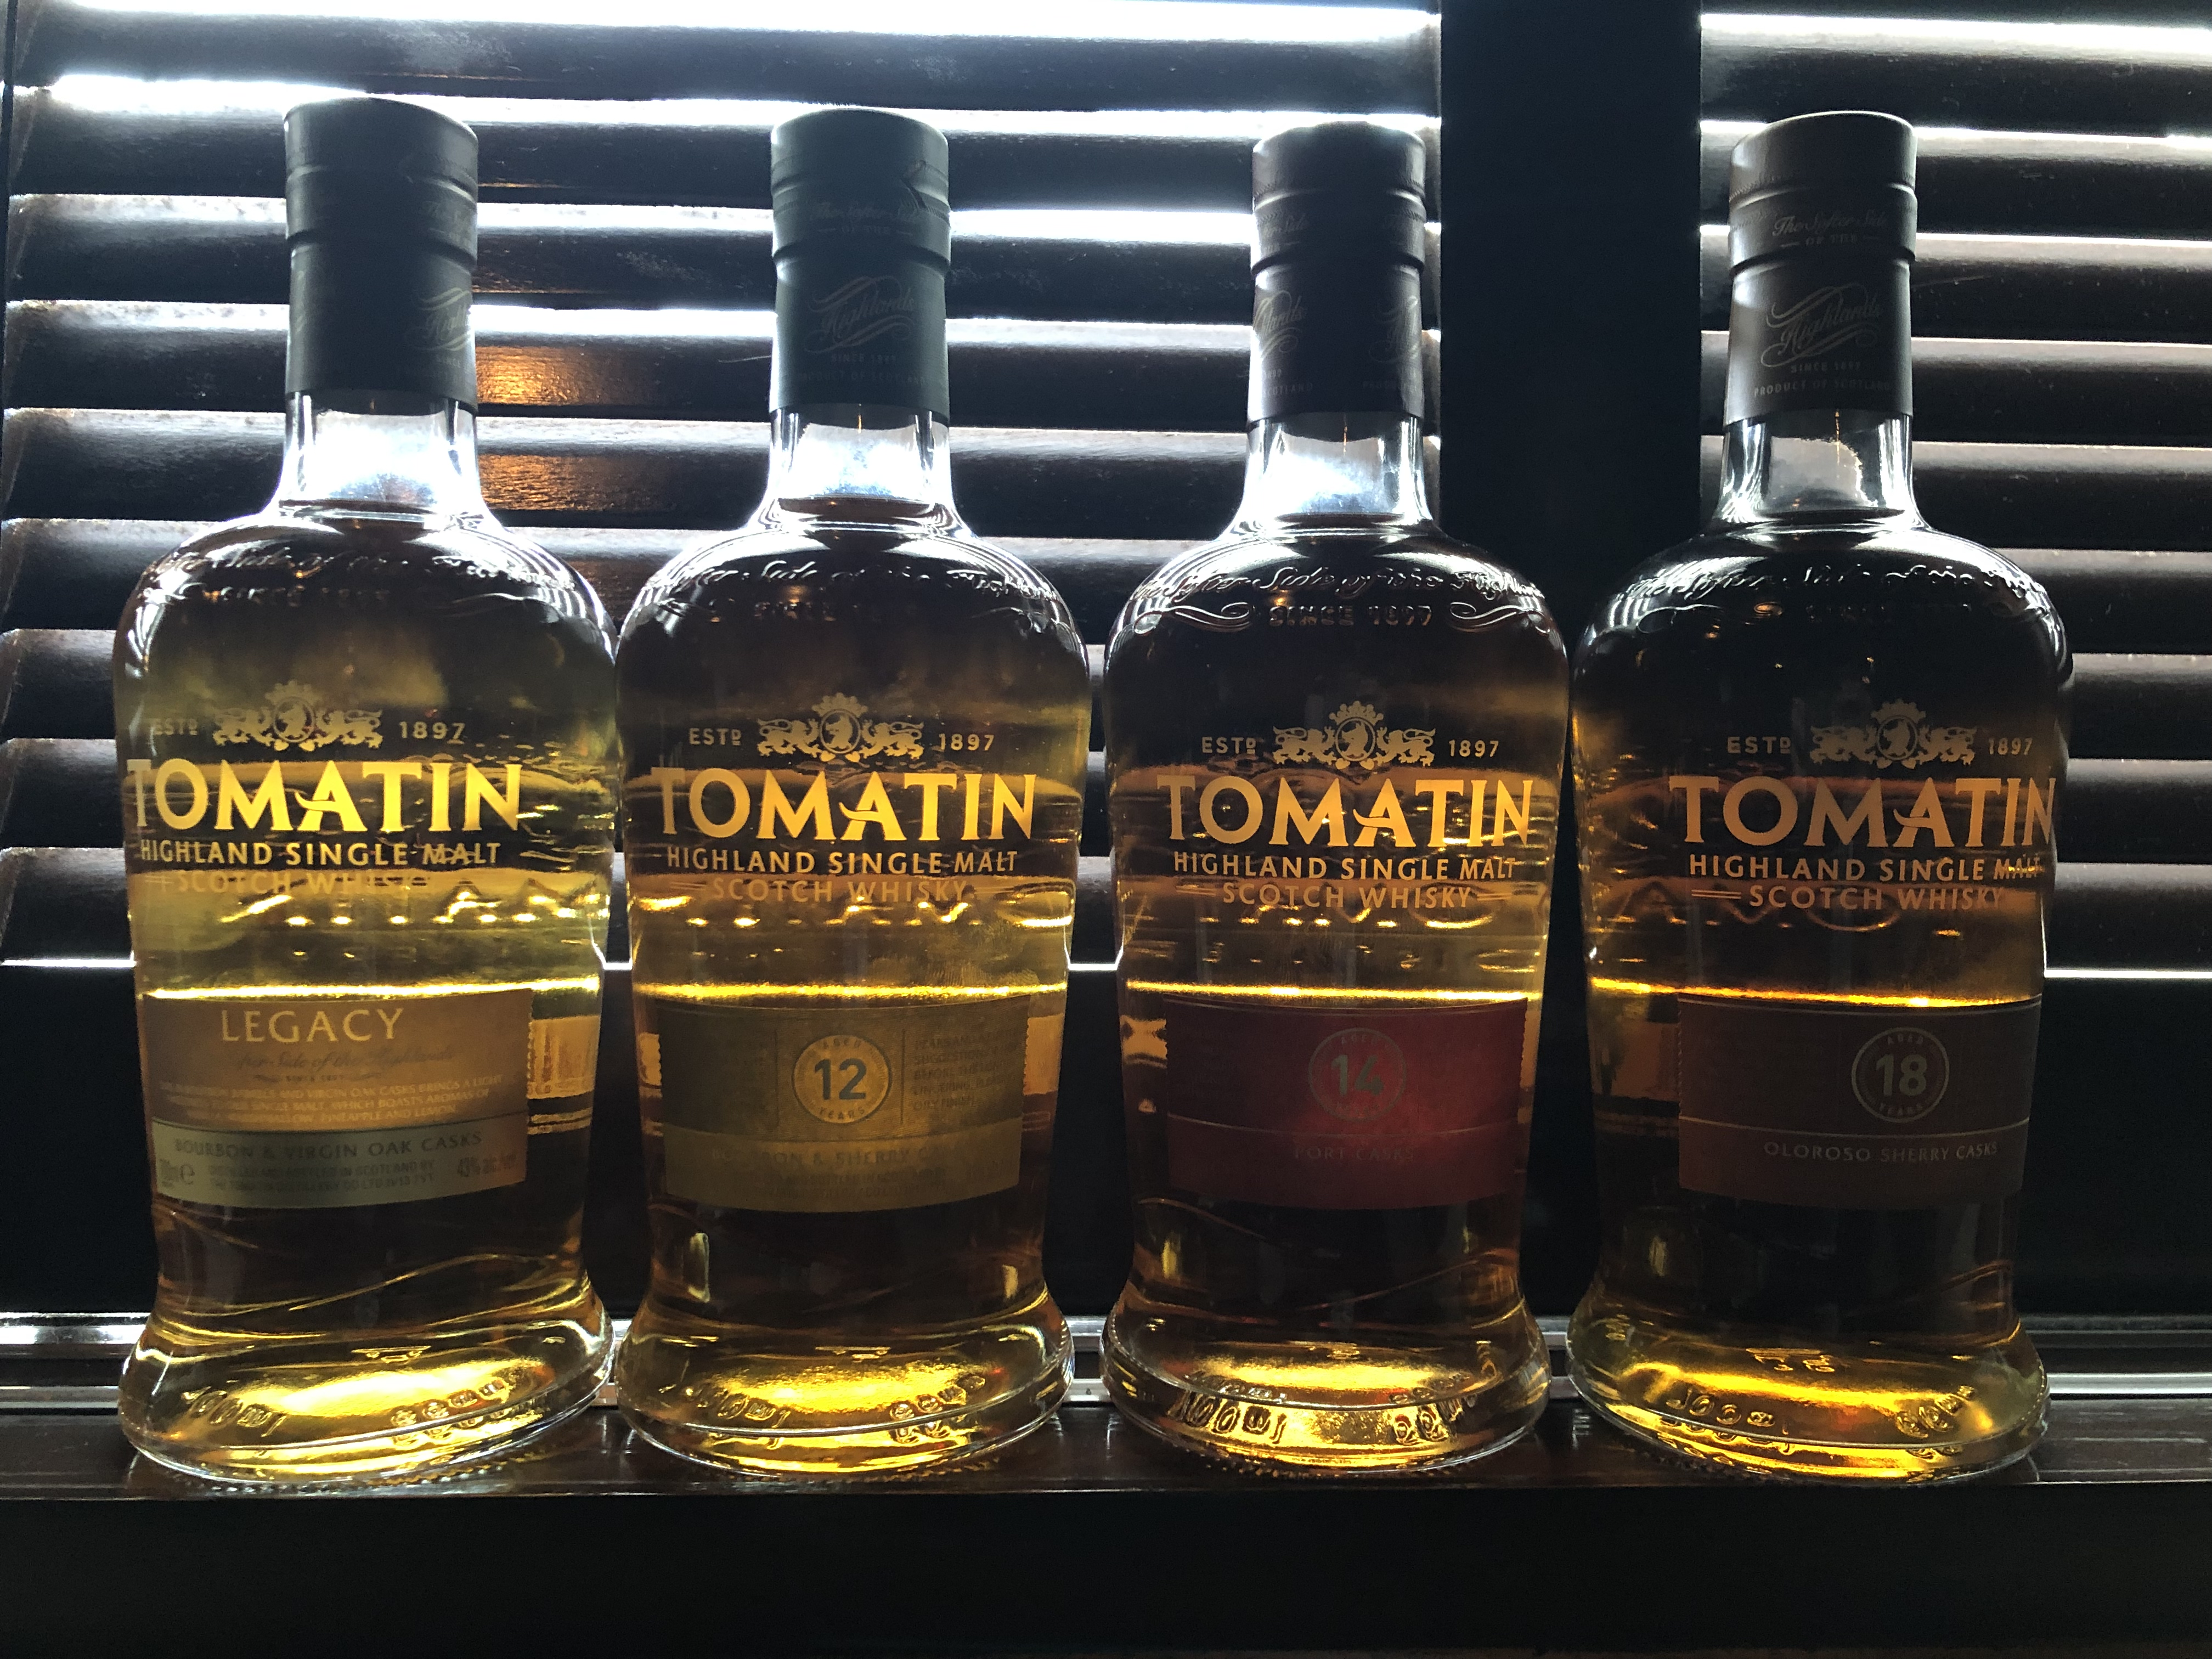 Tomatin Leads The Way In Sustainable Practises In Scotch photo